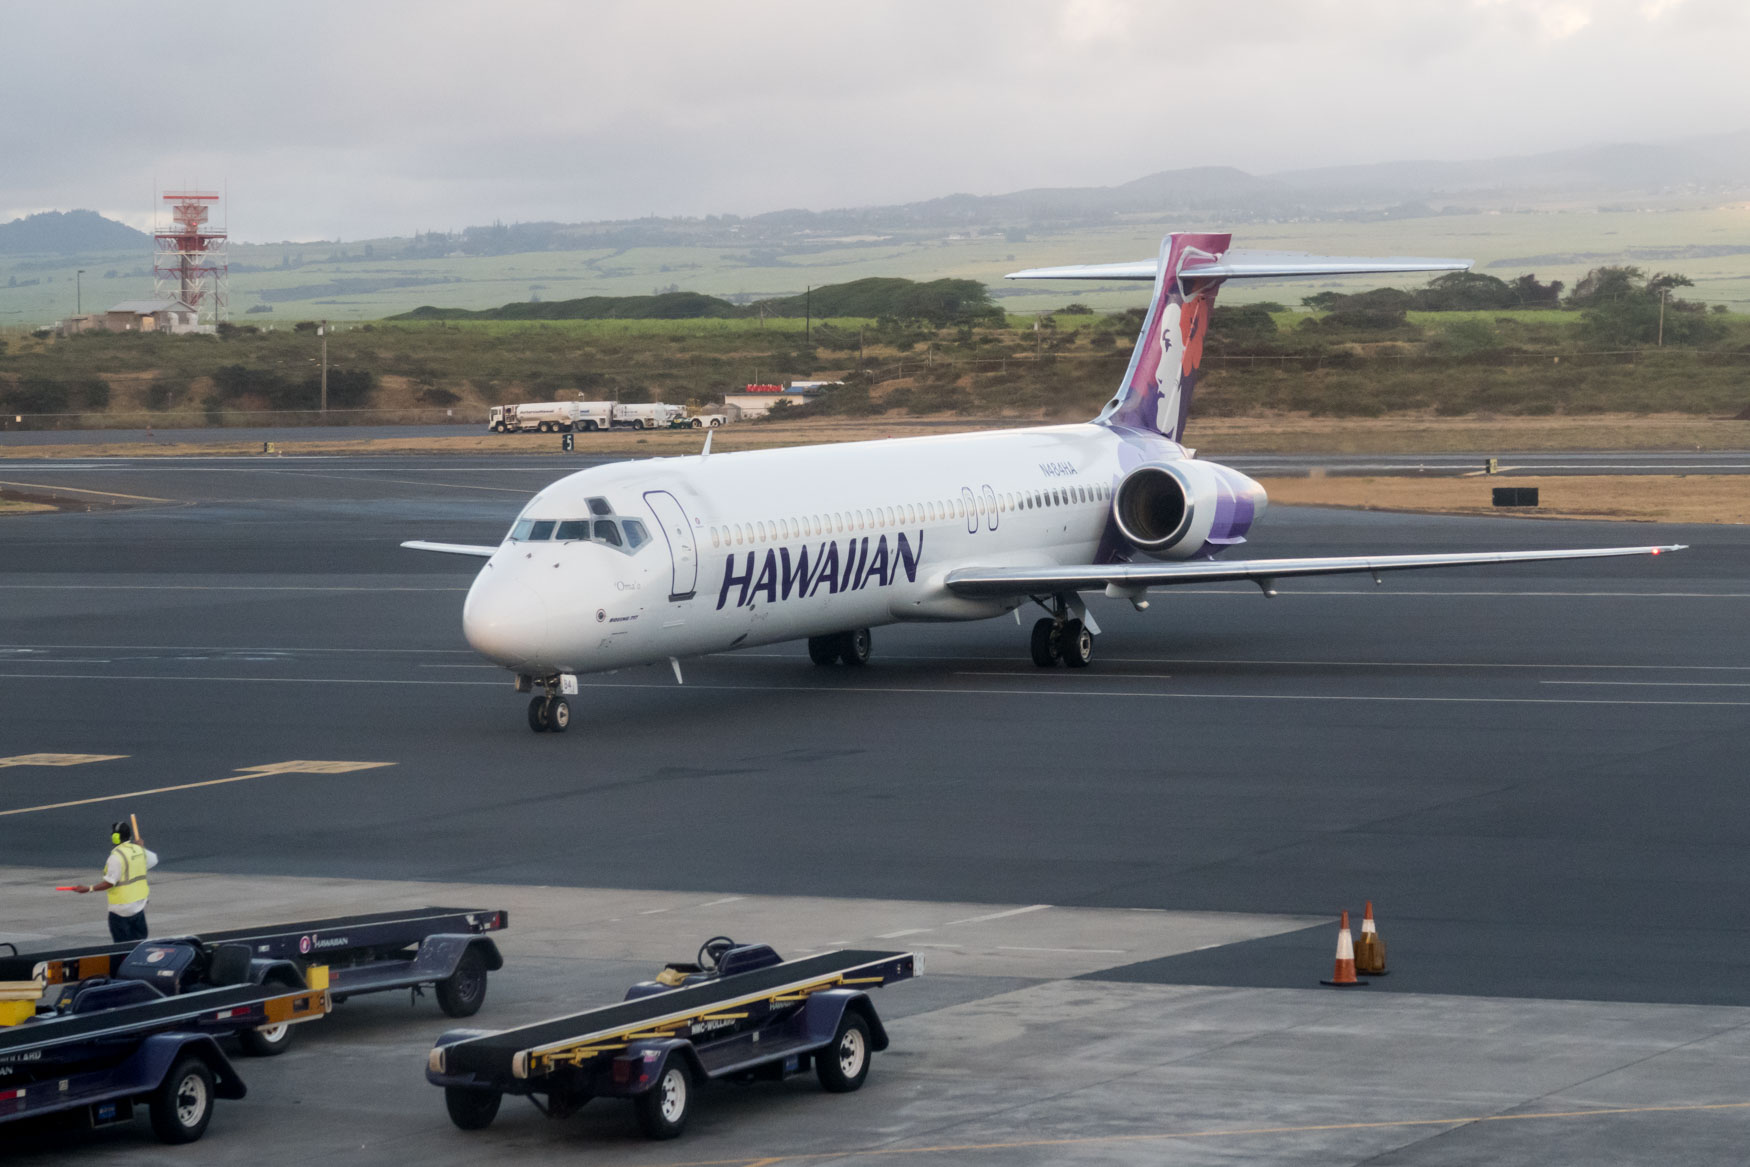 Hawaiian Airlines Boeing 717 Arriving at Gate